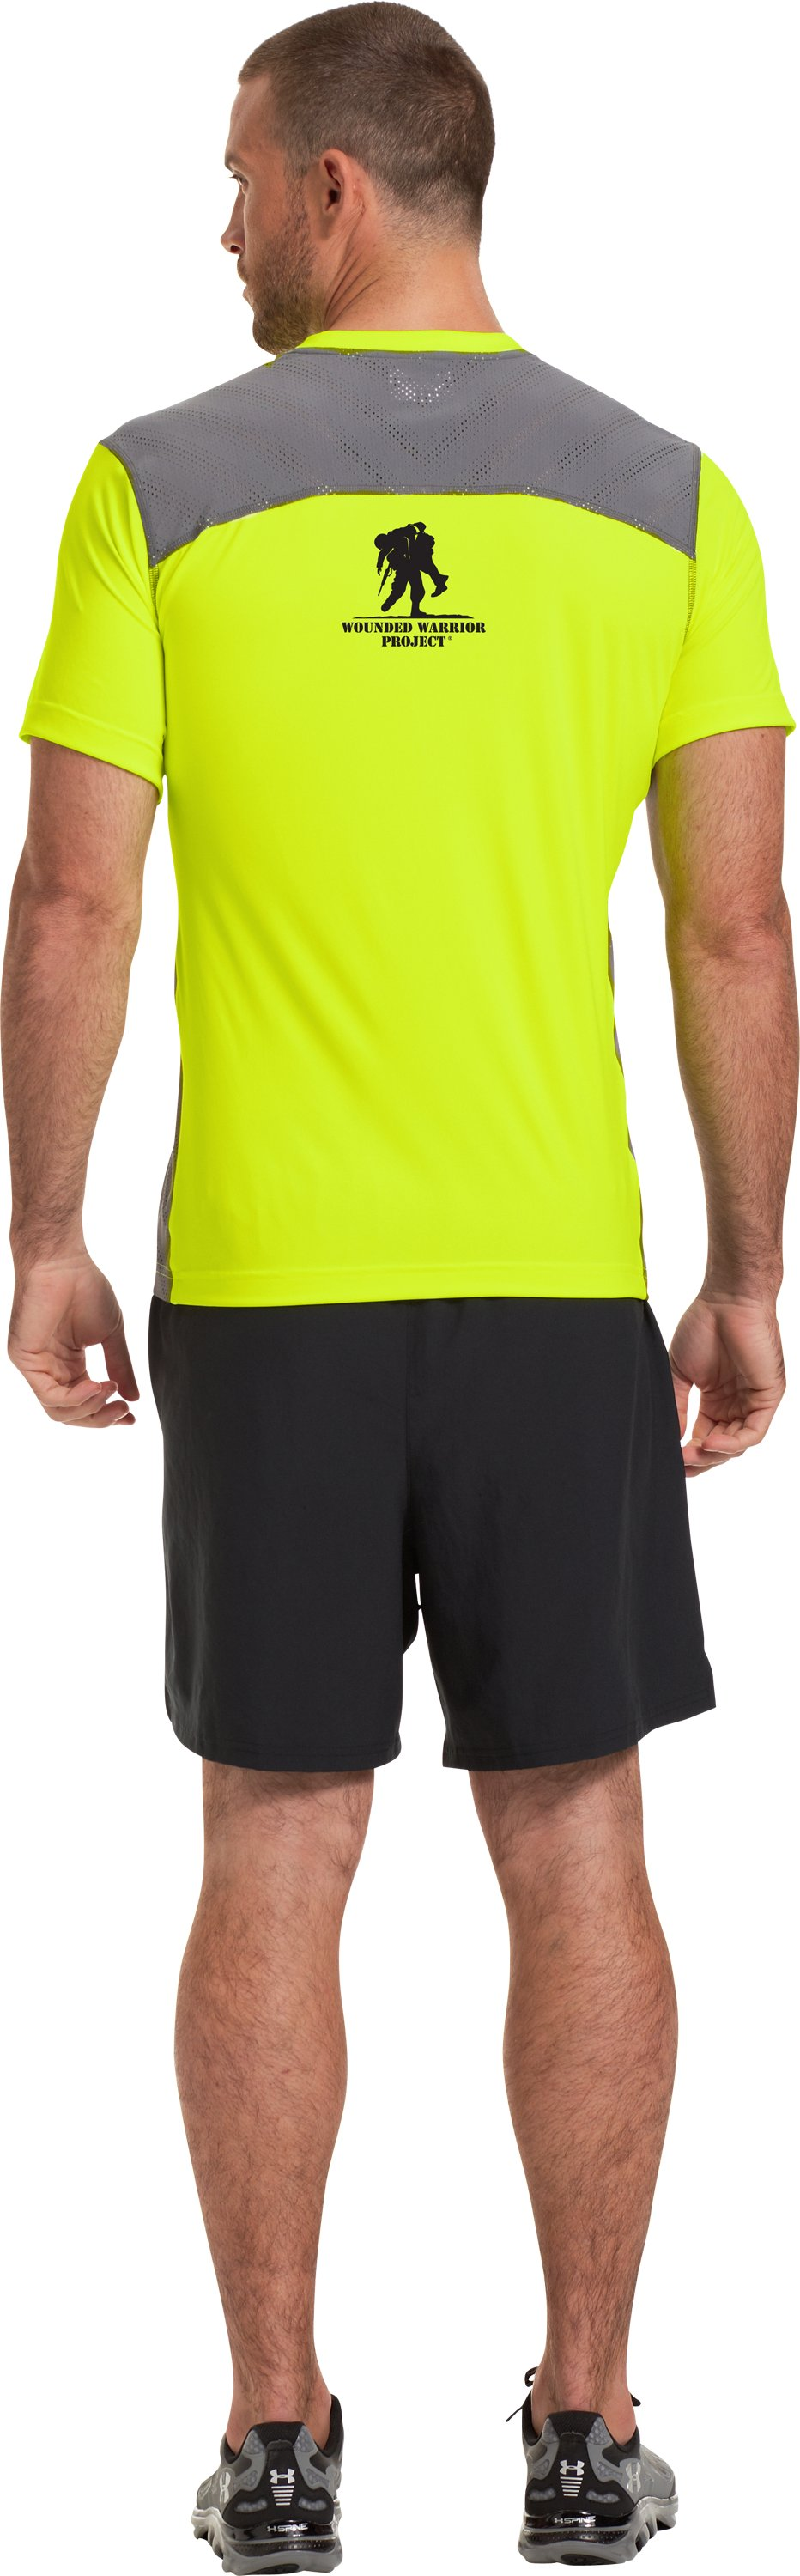 Men's WWP ArmourVent™ Short Sleeve T-Shirt, High-Vis Yellow